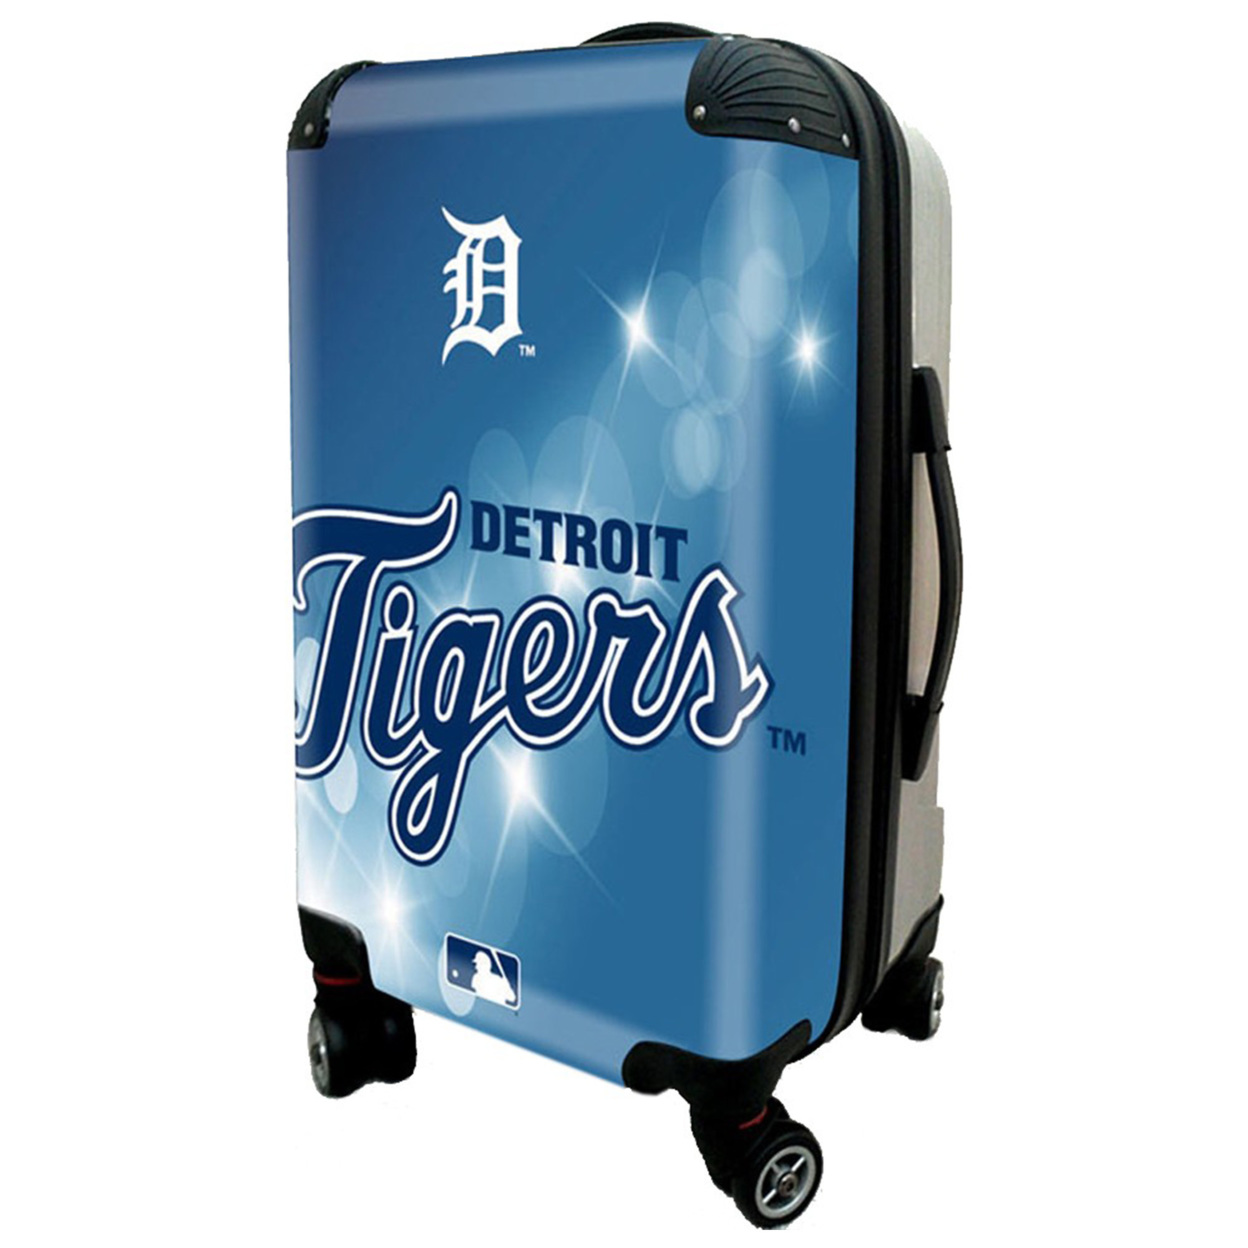 Detroit Tigers, 21 Clear Poly Carry-On Luggage by Kaybull #DET9 detroit tigers at toronto blue jays